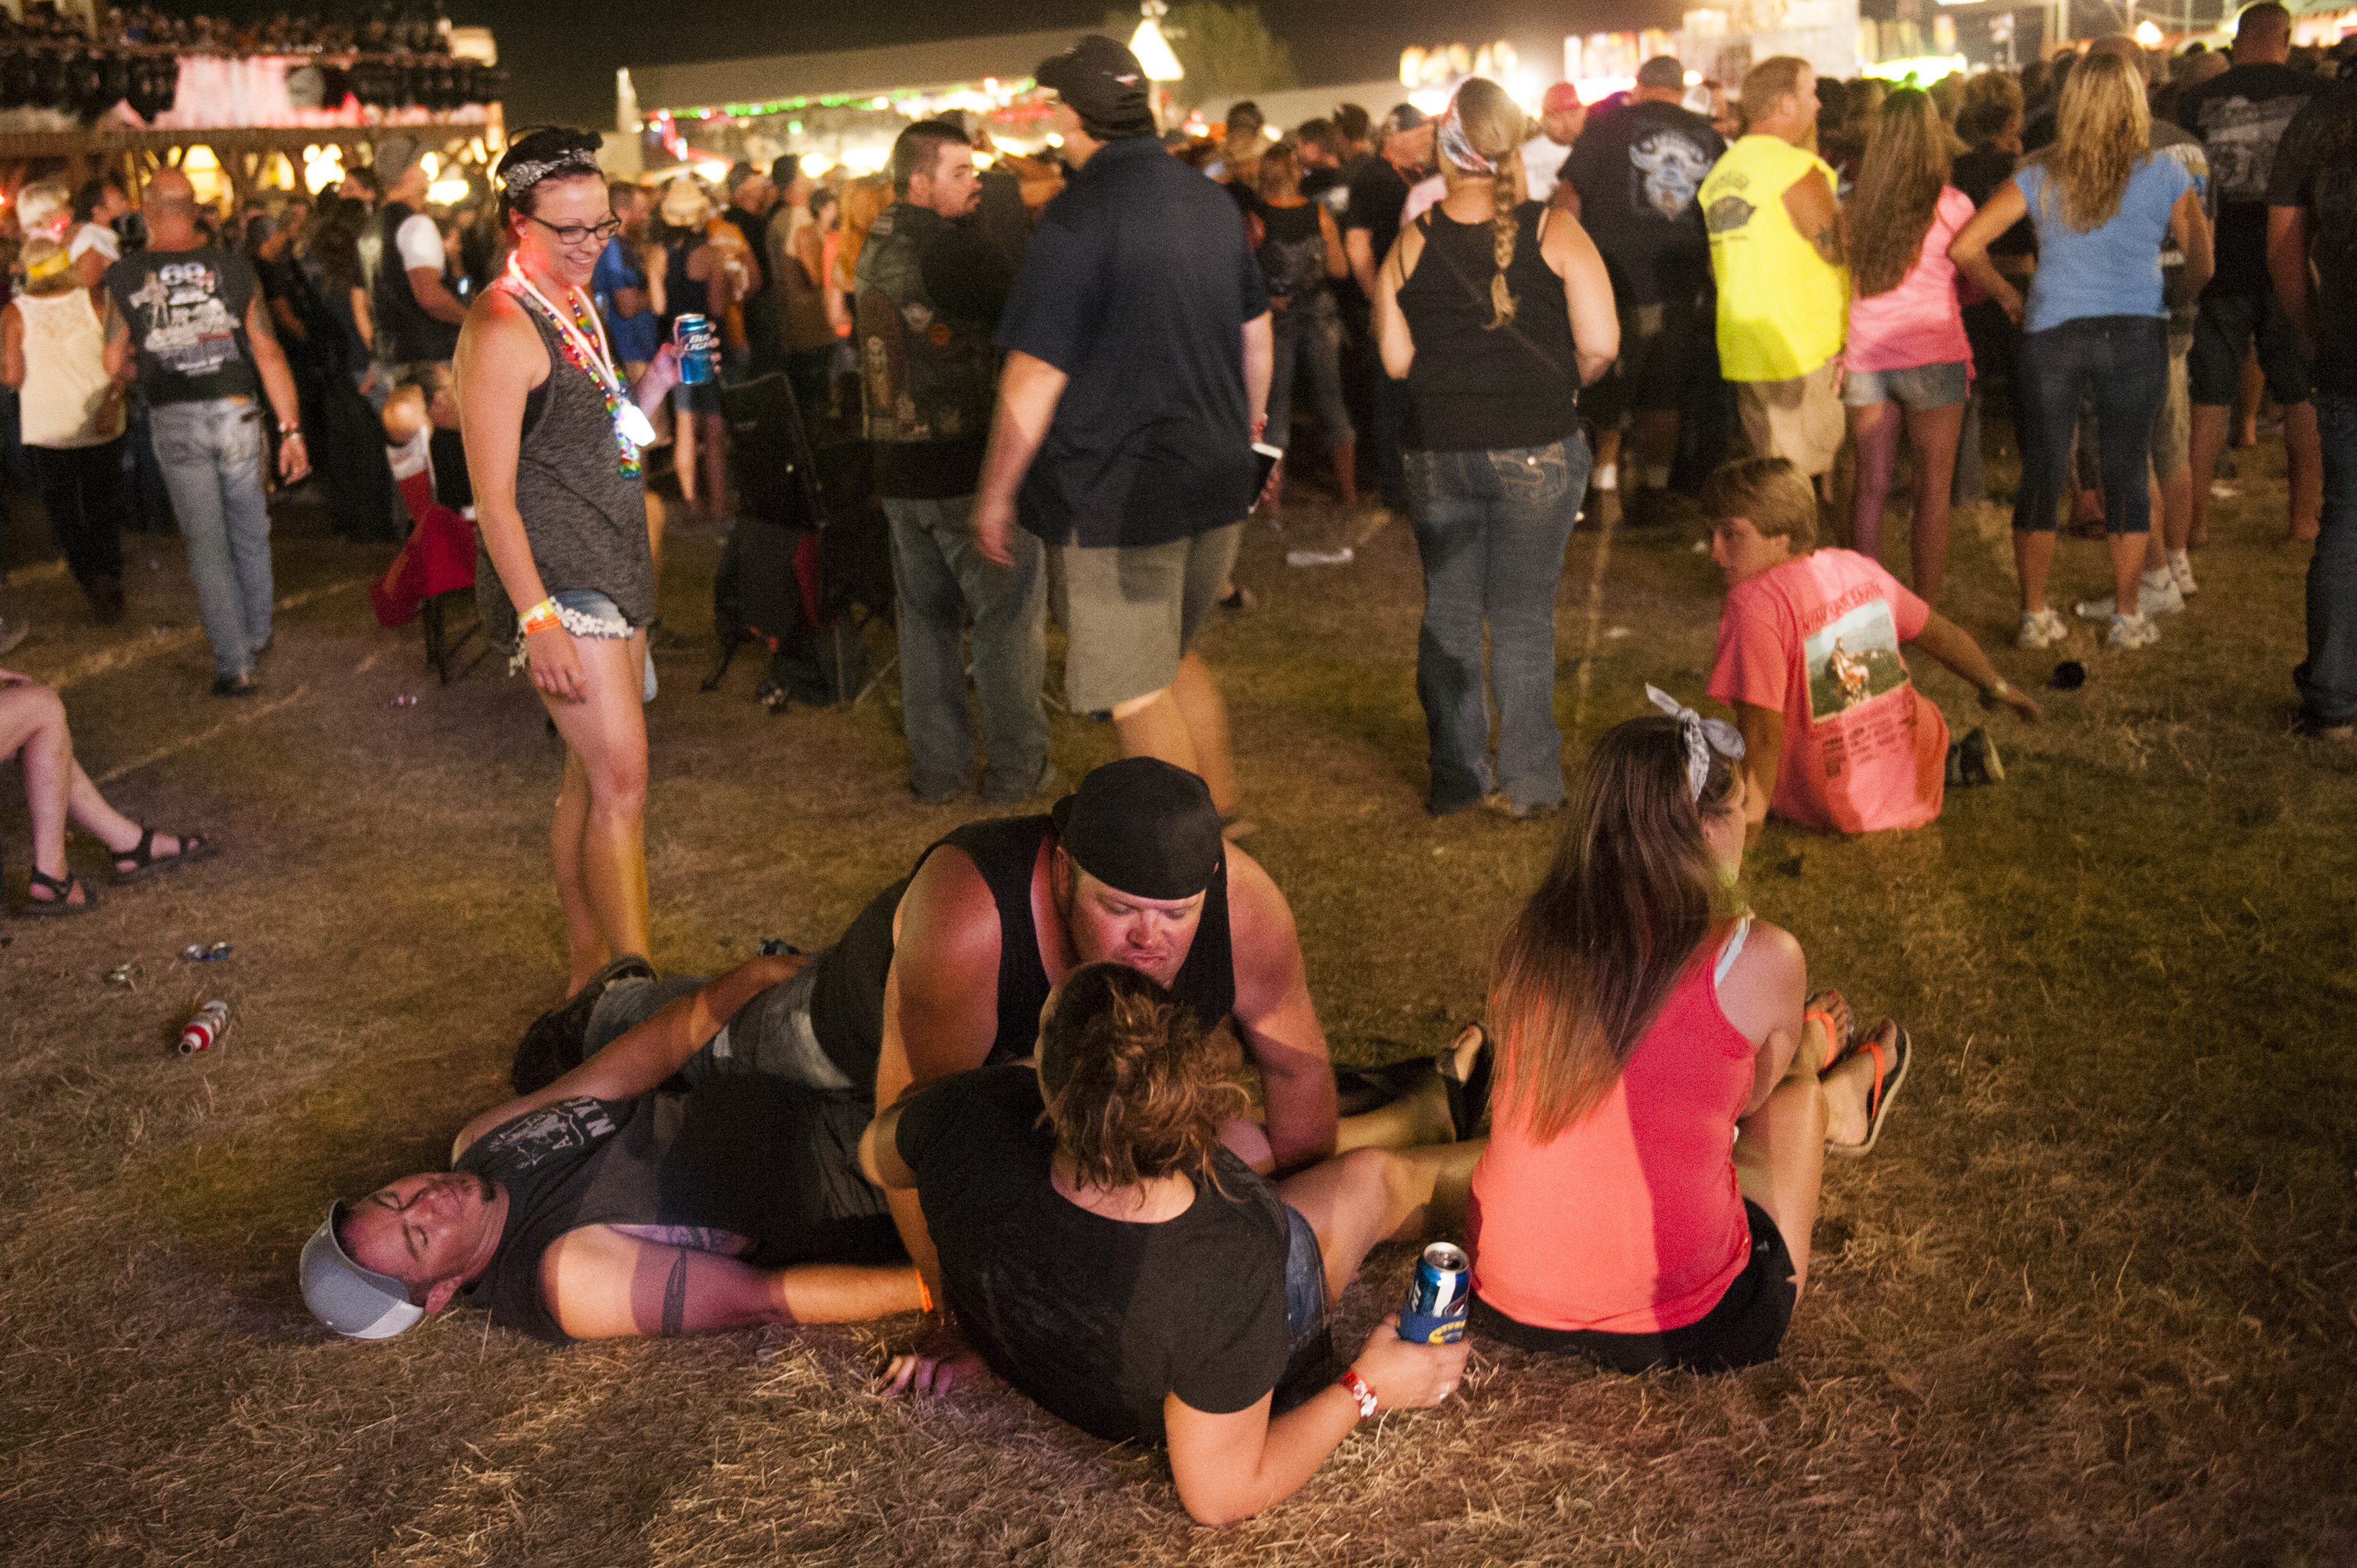 STURGIS, SD - AUGUST 3:  Revelers watch a concert at the Sturgis Buffalo Chip campground August 3, 2015 in Sturgis, South Dakota.  This year marks the 75th anniversary of the Sturgis Motorcycle Rally, with crowds of up to 1.2 million people expected to visit.  Andrew Cullen | Getty Images